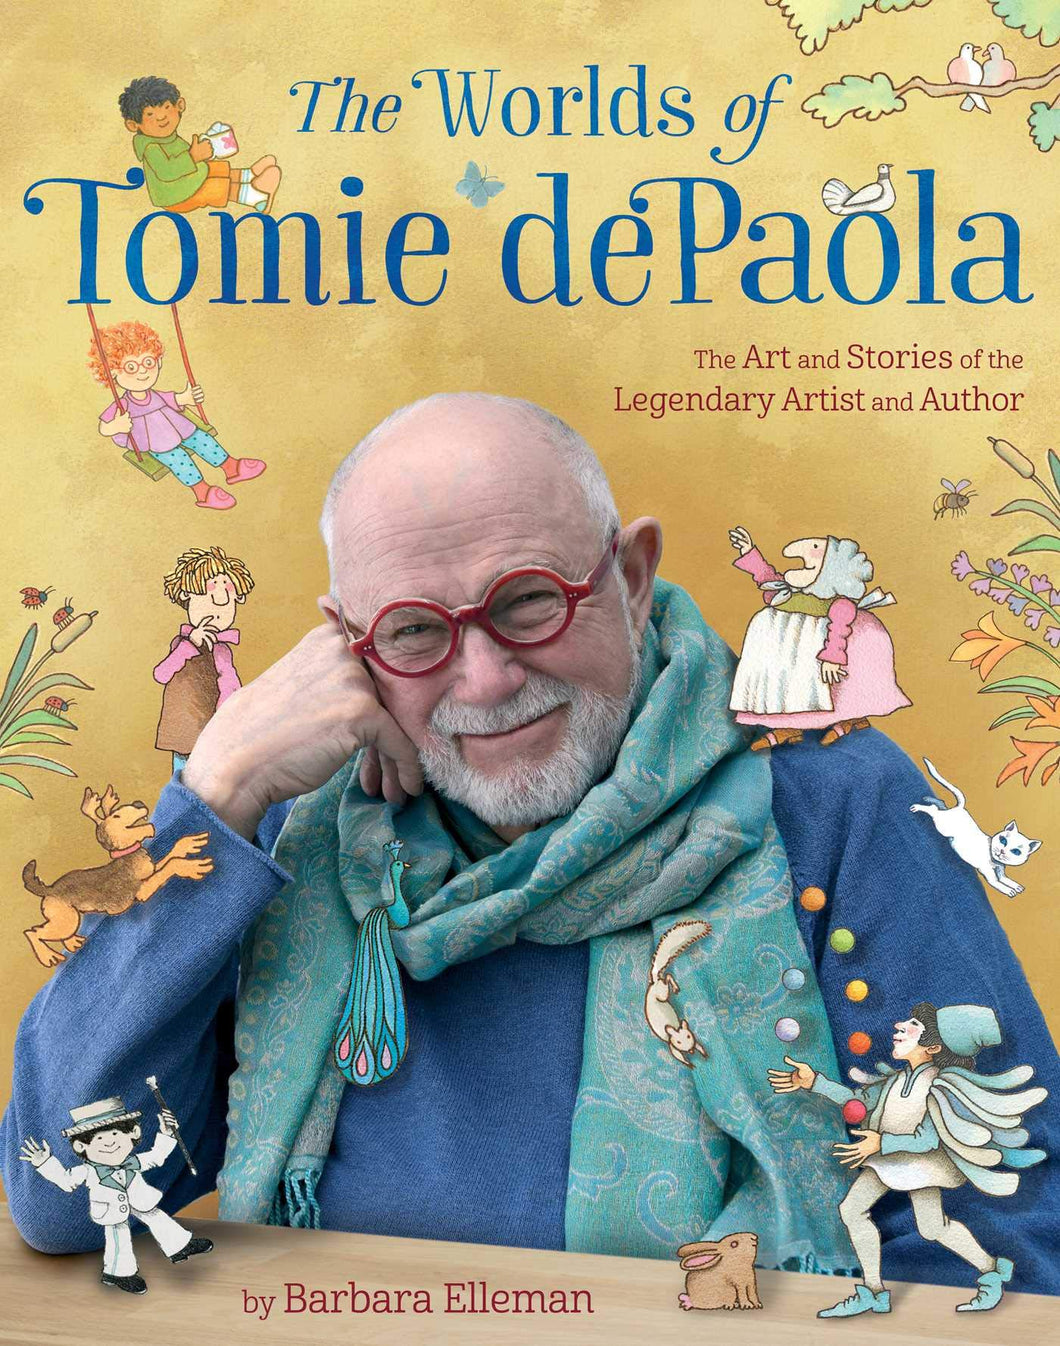 The Worlds of Tomie dePaola